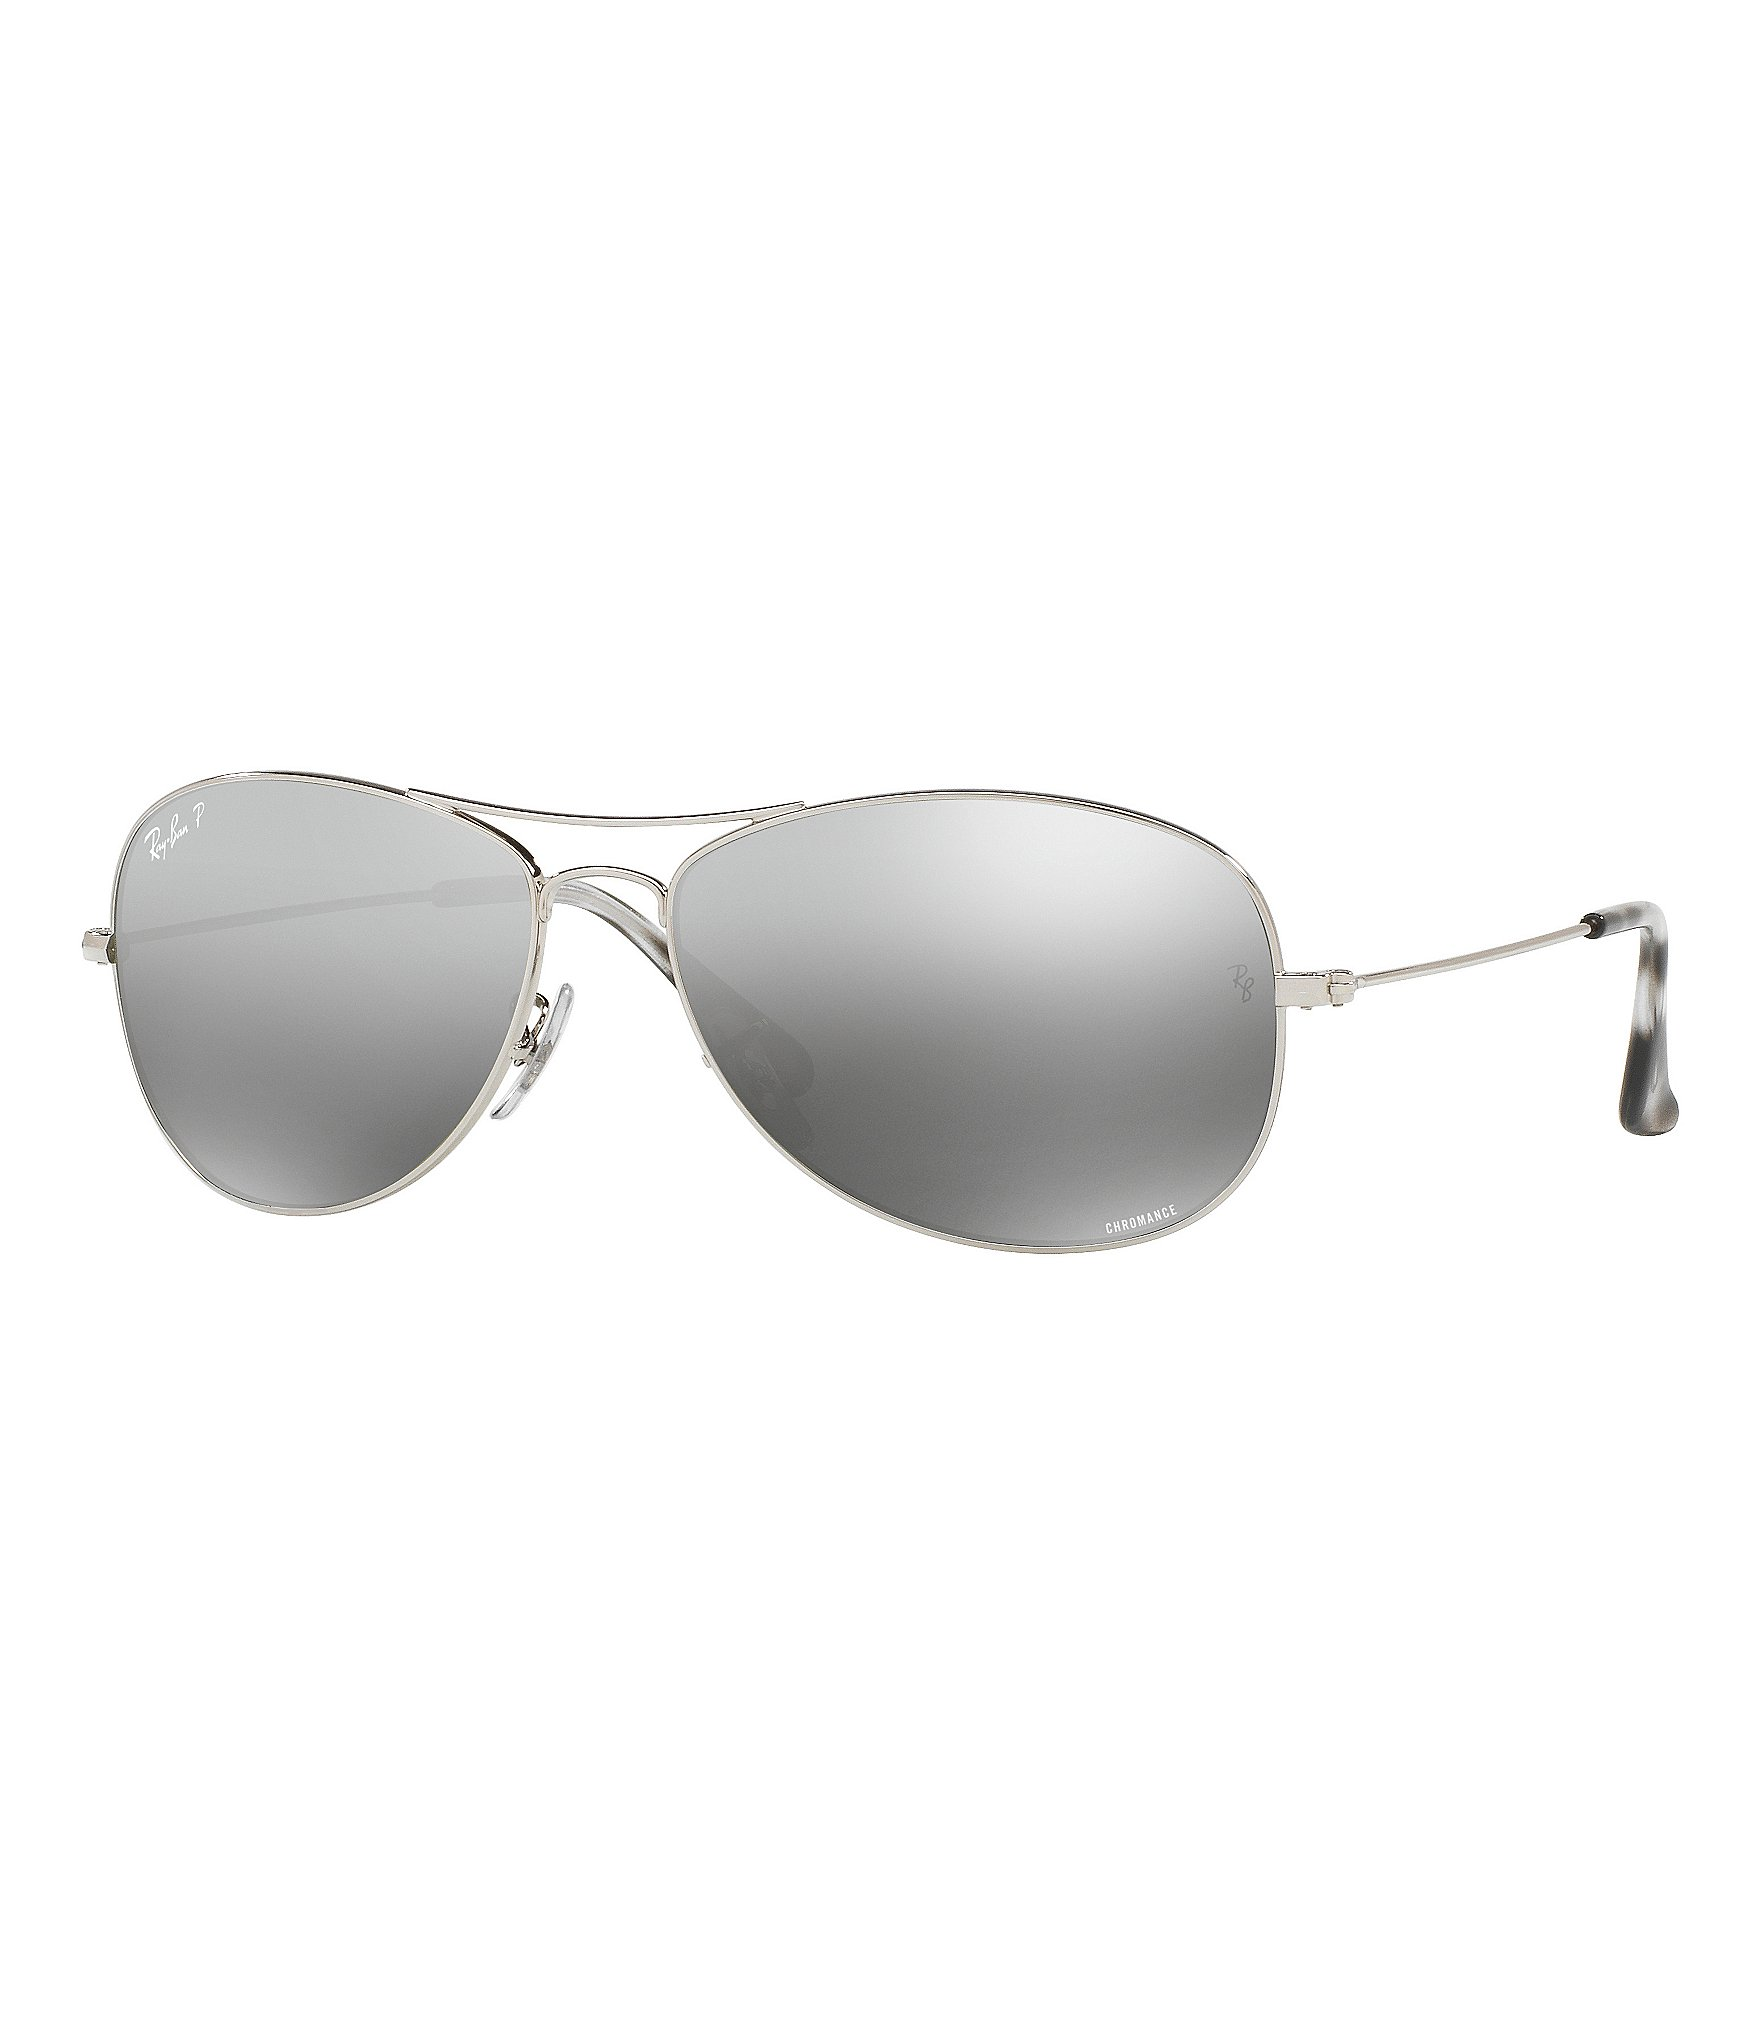 c7f000a370 Ray-Ban Chromance Polarized Mirrored Aviator Sunglasses